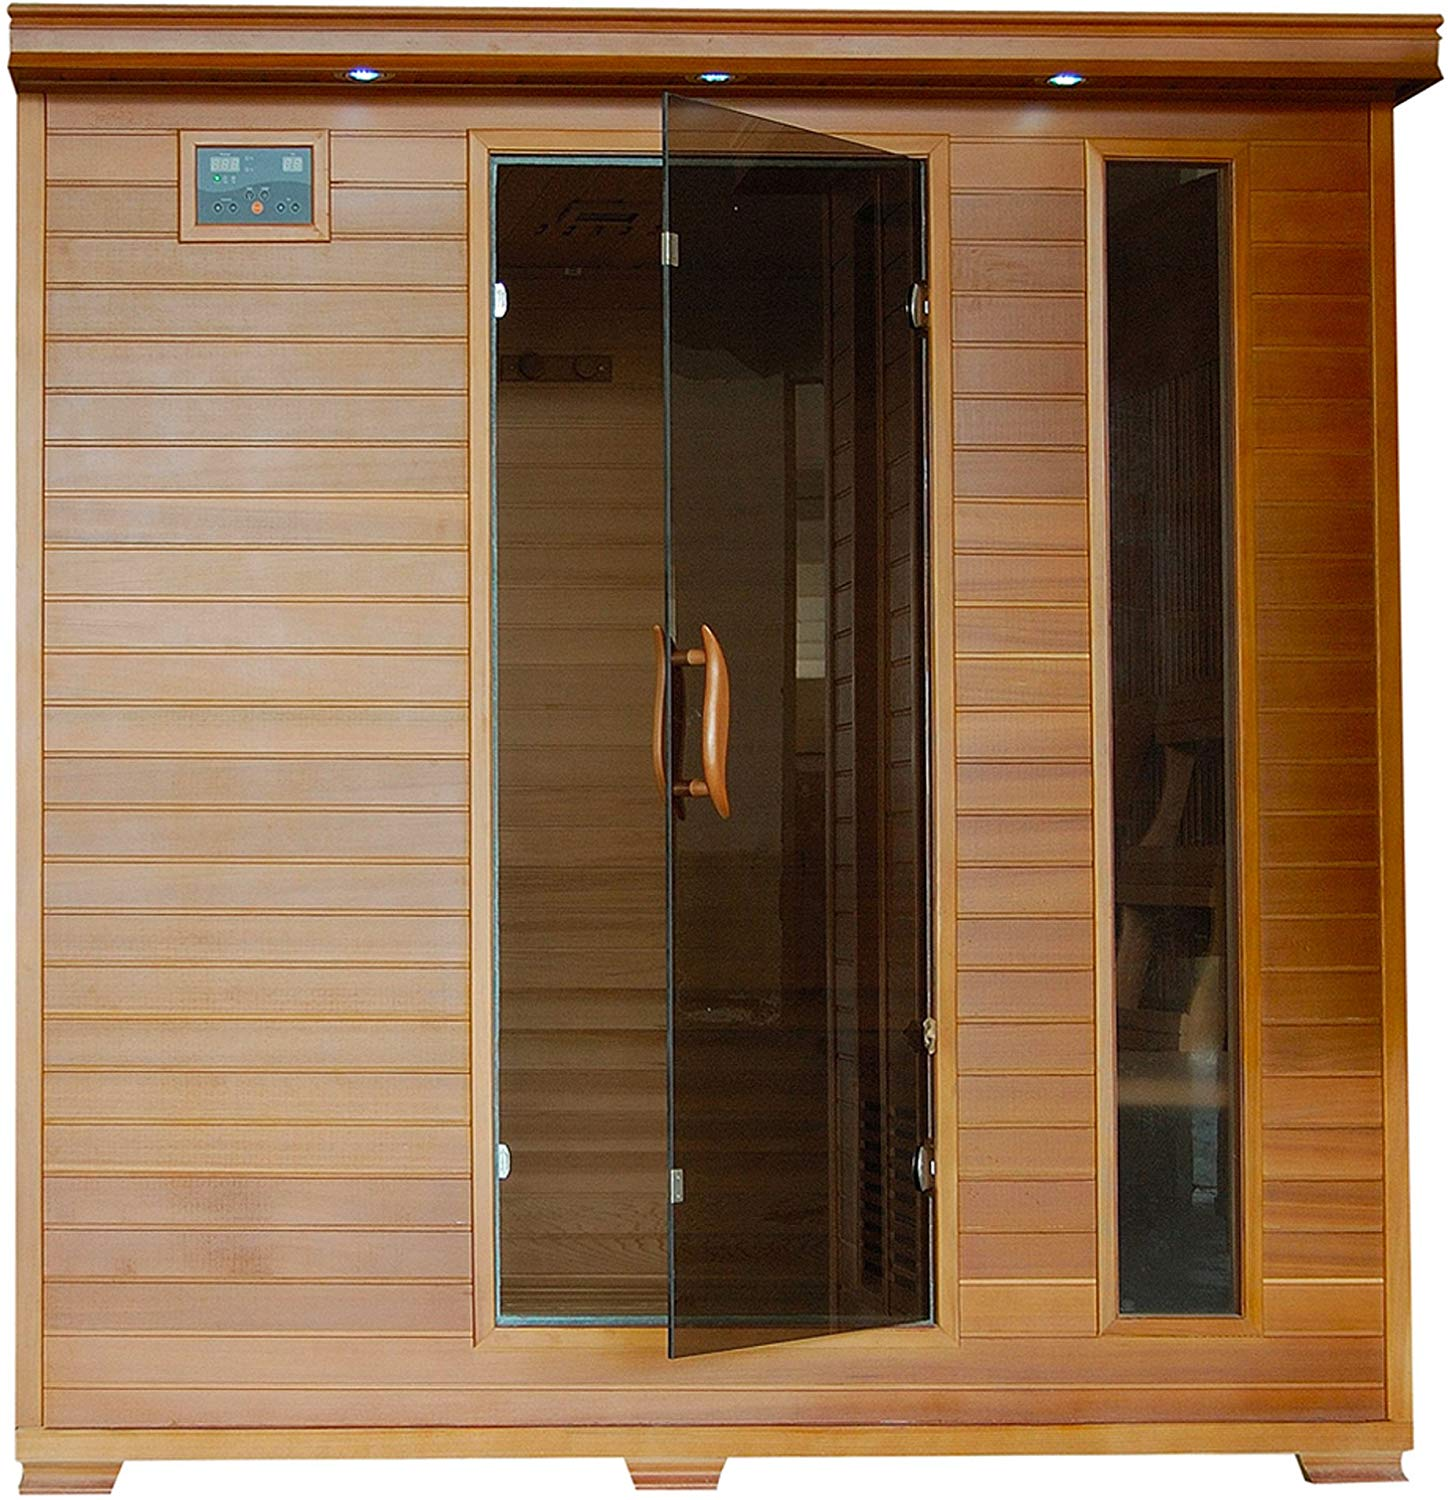 Radiant Saunas BSA1323 6-Person Cedar Infrared Sauna